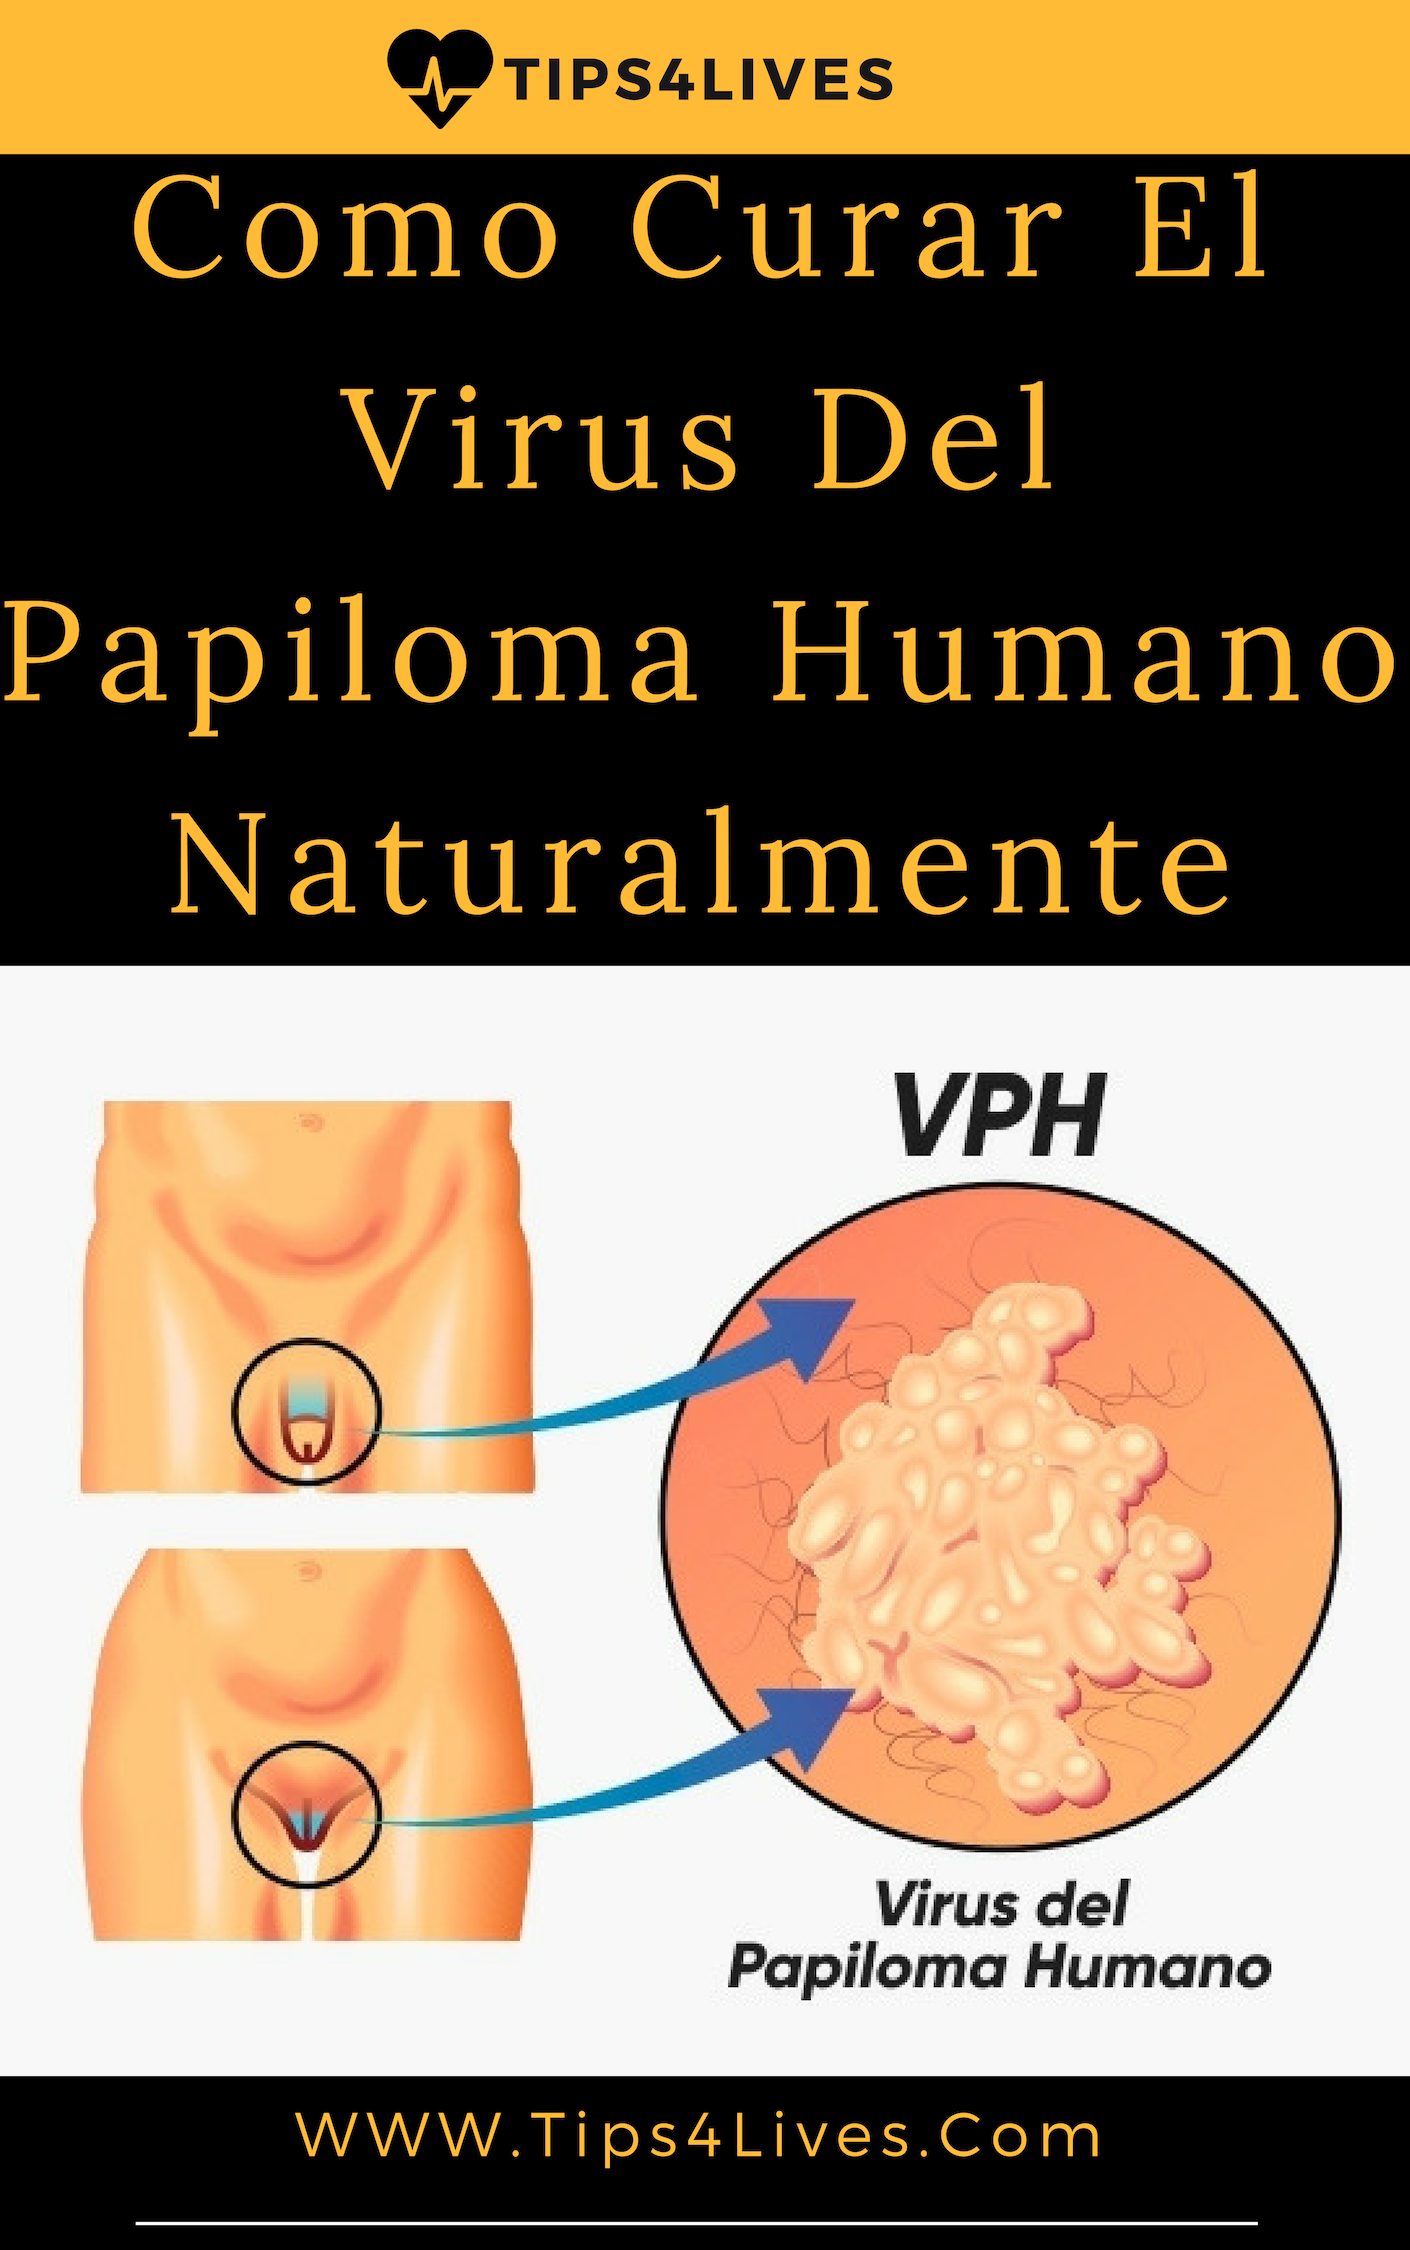 hpv impfung typen human papillomavirus infection male